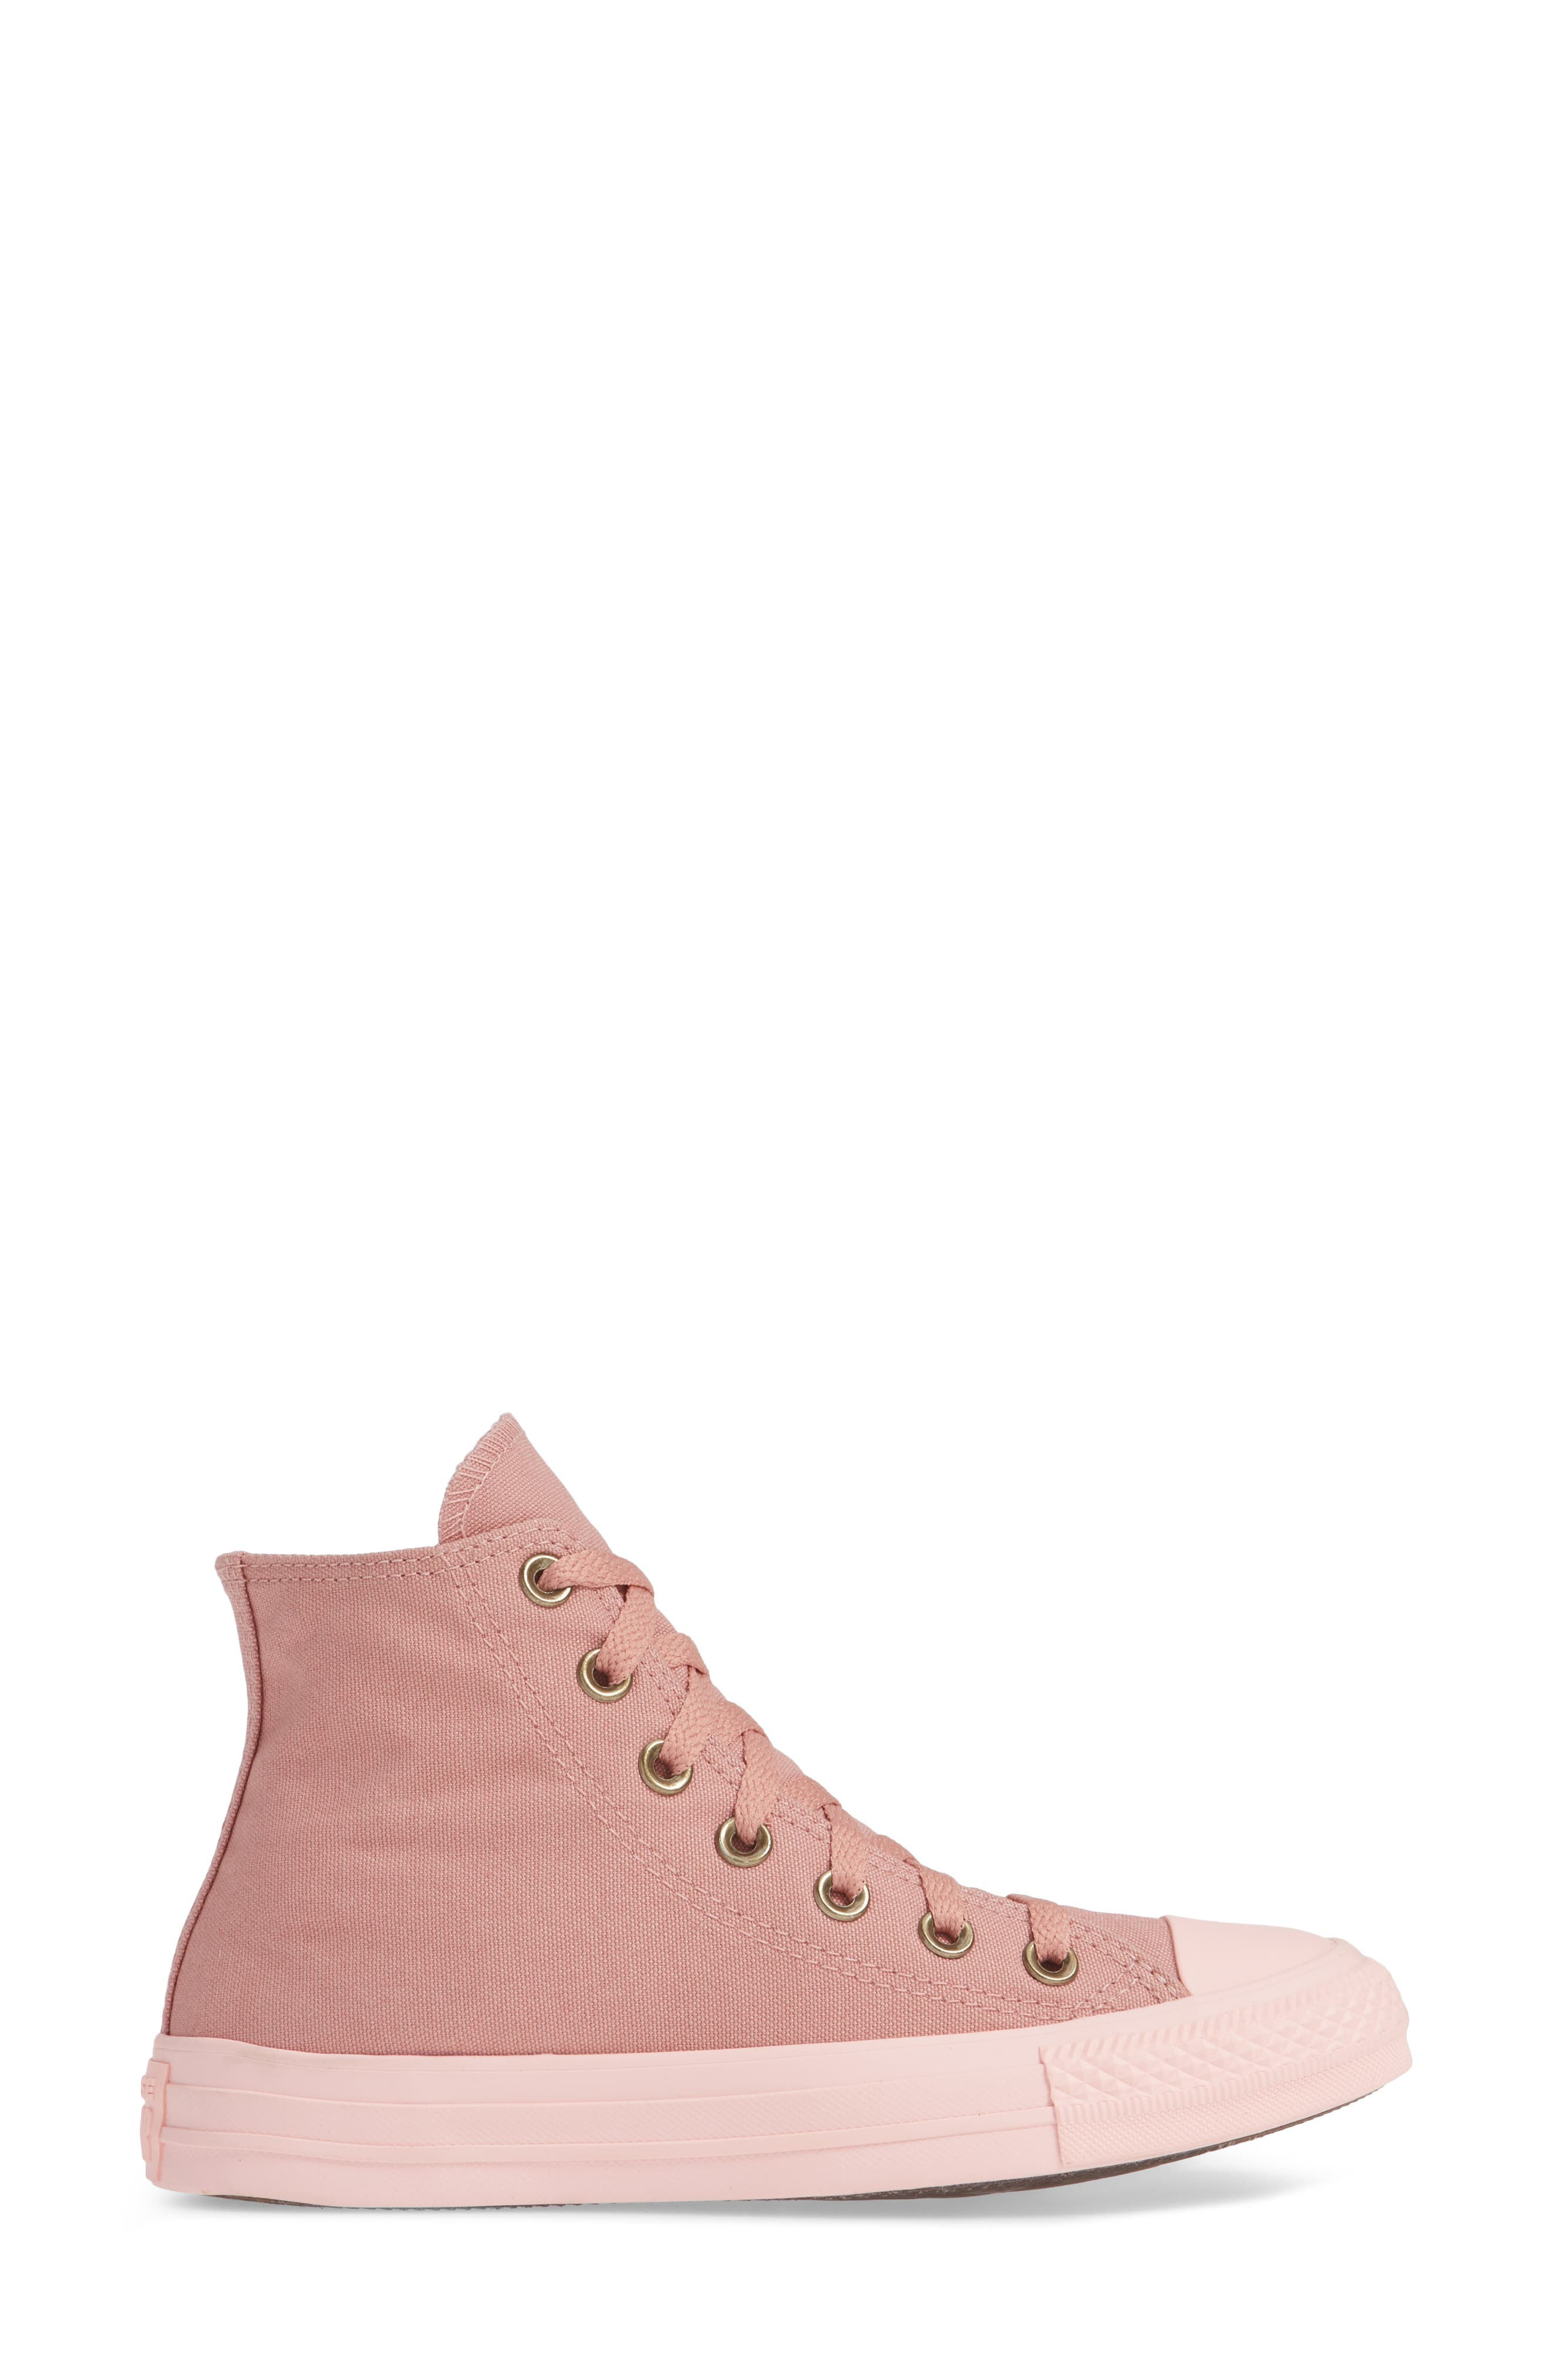 Chuck Taylor<sup>®</sup> All Star<sup>®</sup> Botanical High Top Sneaker,                             Alternate thumbnail 3, color,                             RUST PINK